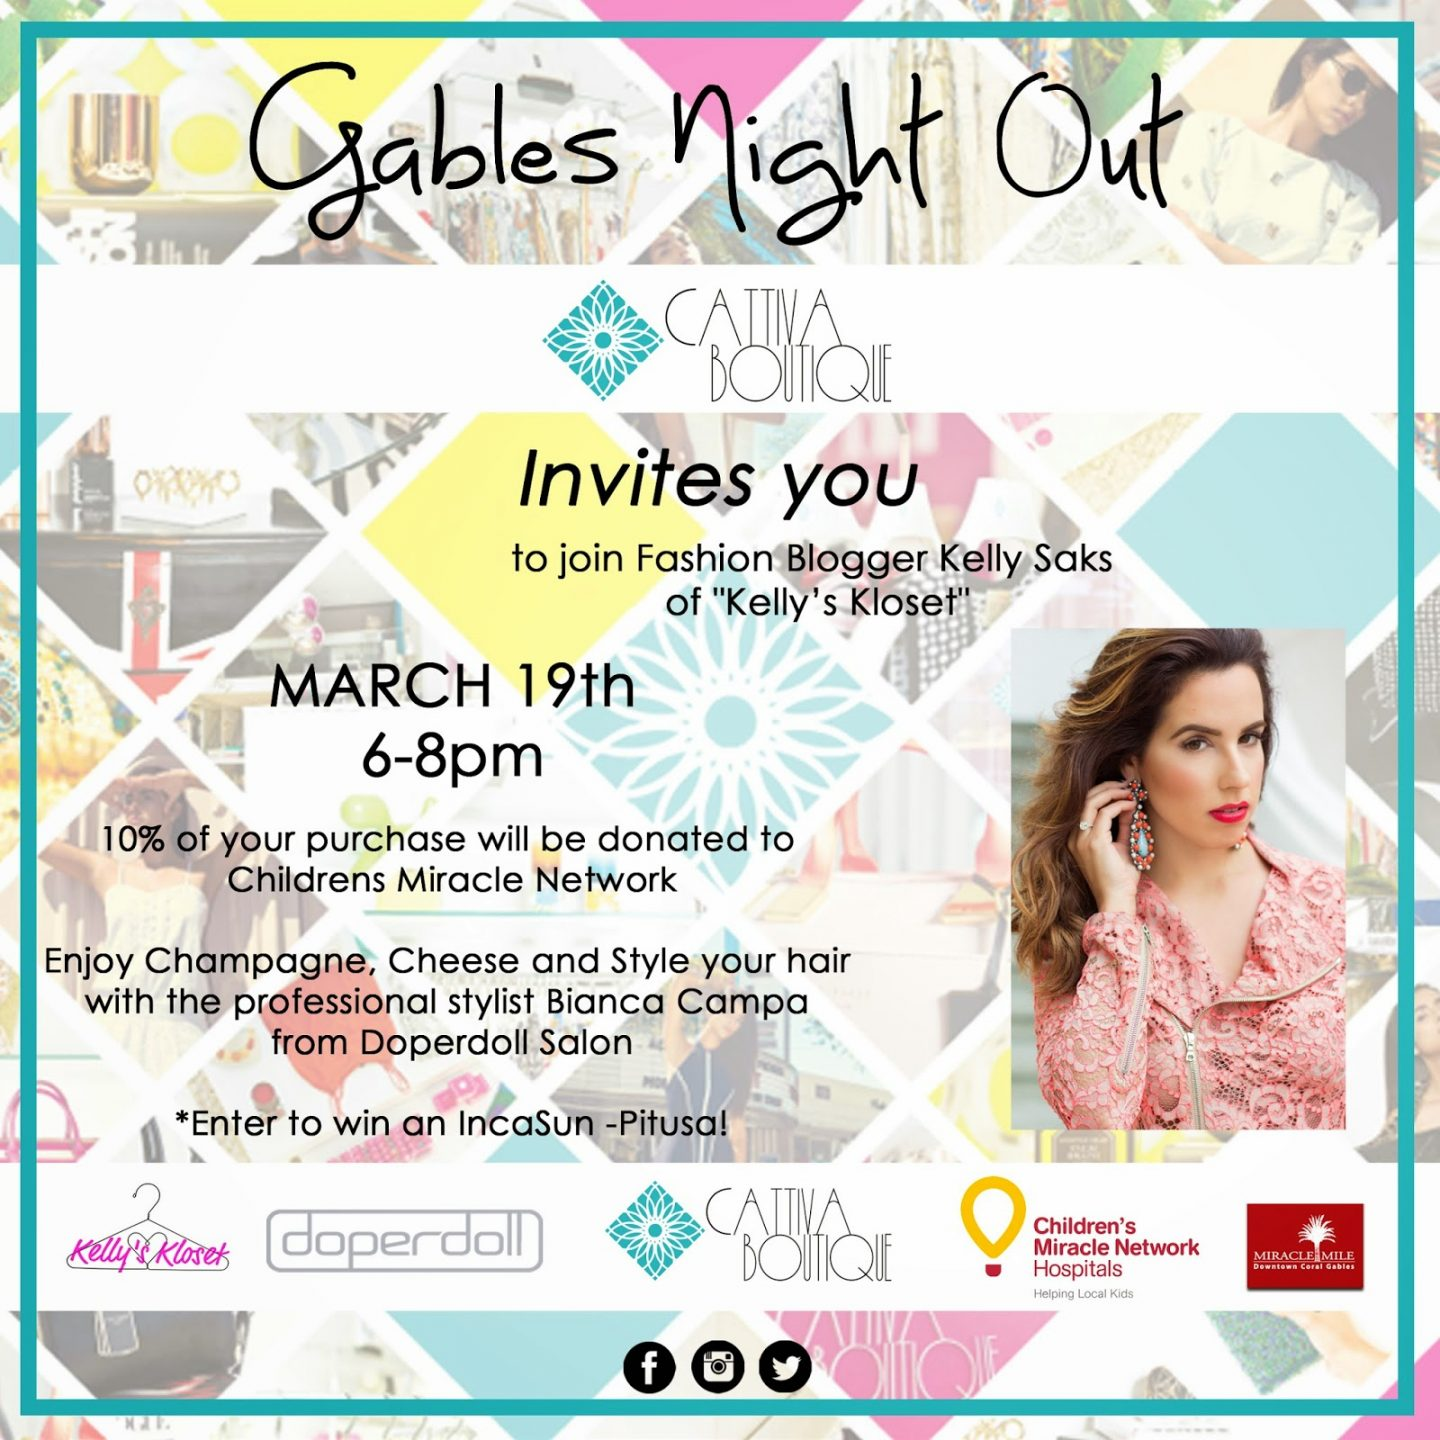 Coral Gables Fashion Week Kicks Off at Cattiva Boutique this Thursday!